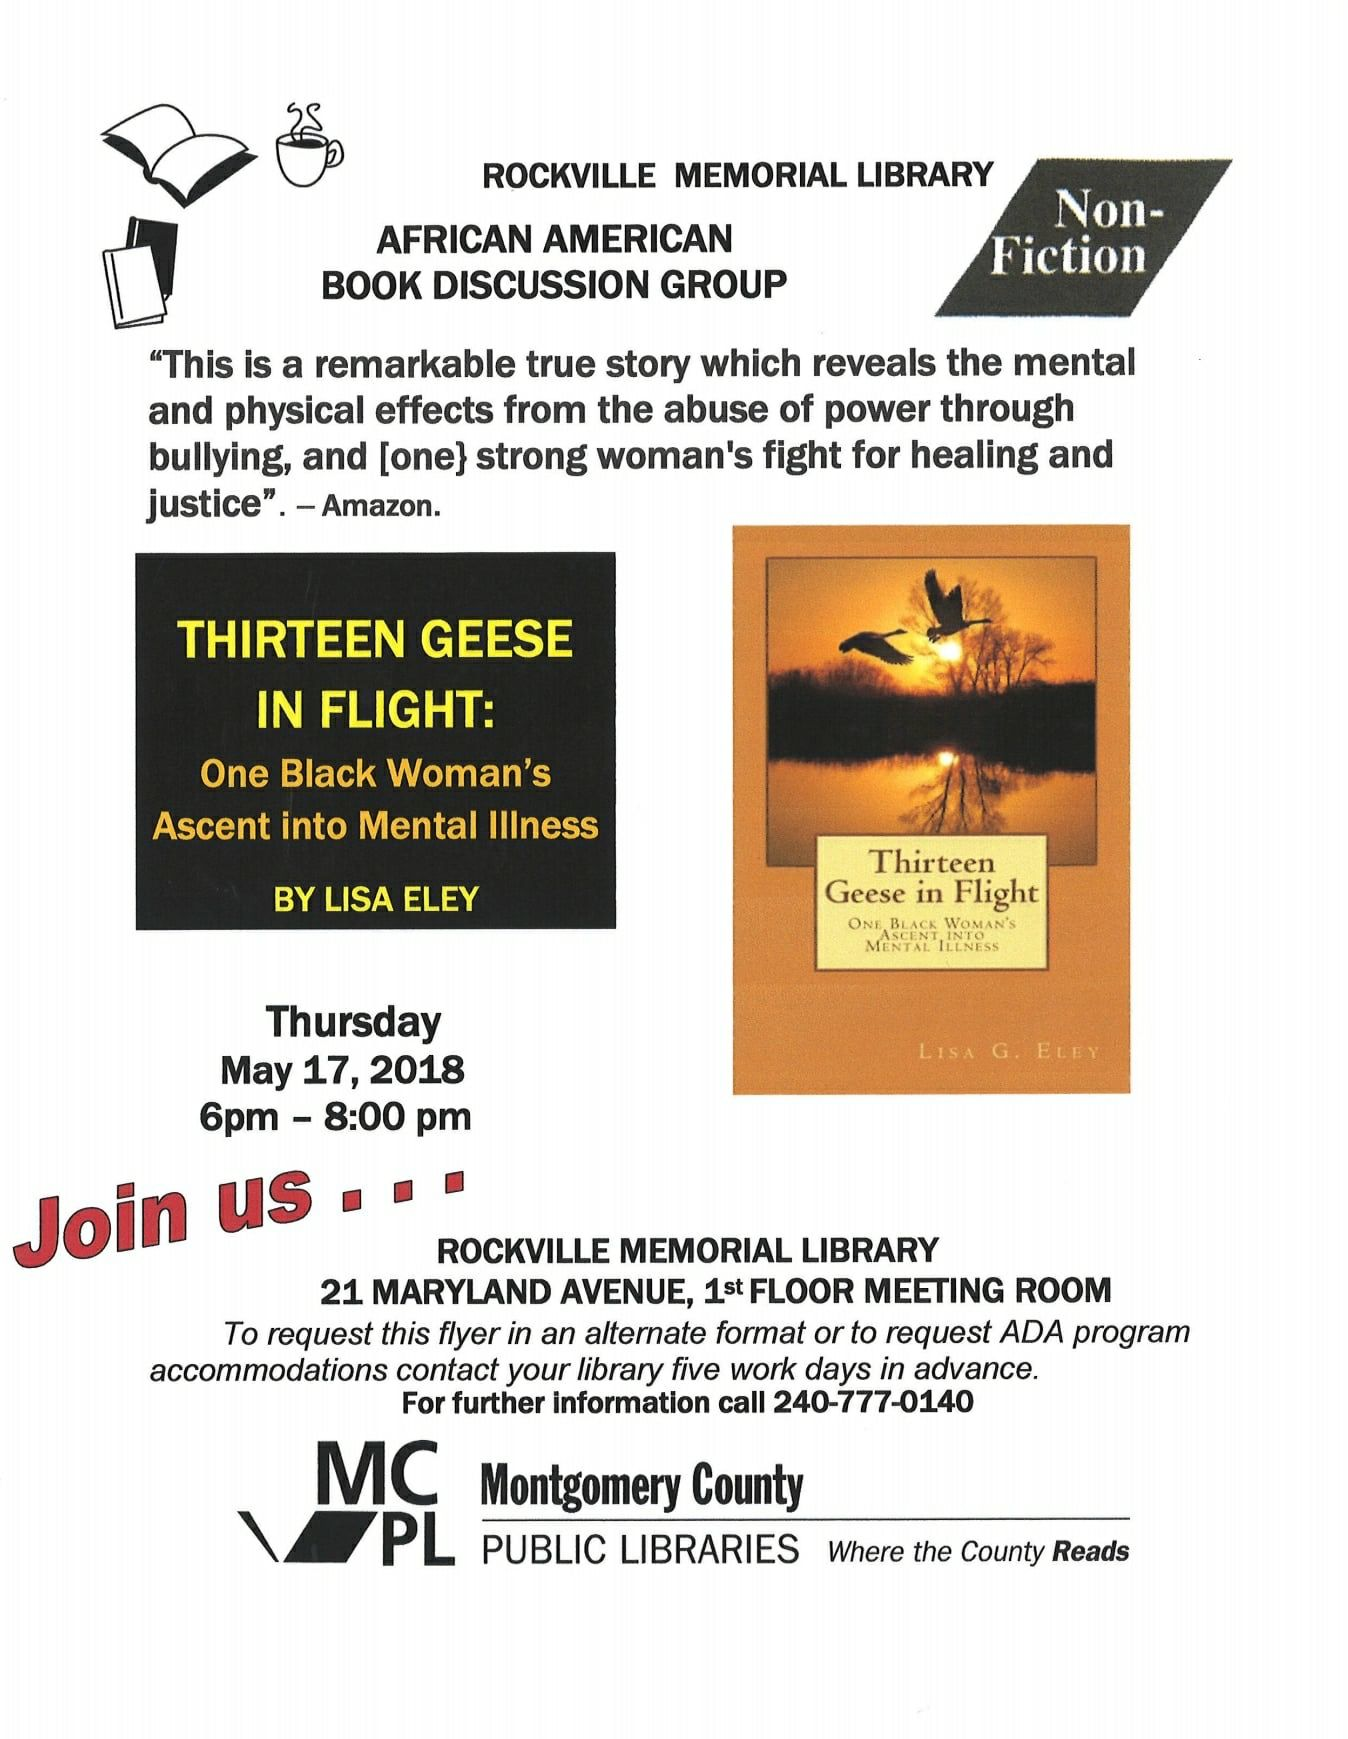 Come Join The African American Book Discussion Group Of Rockville